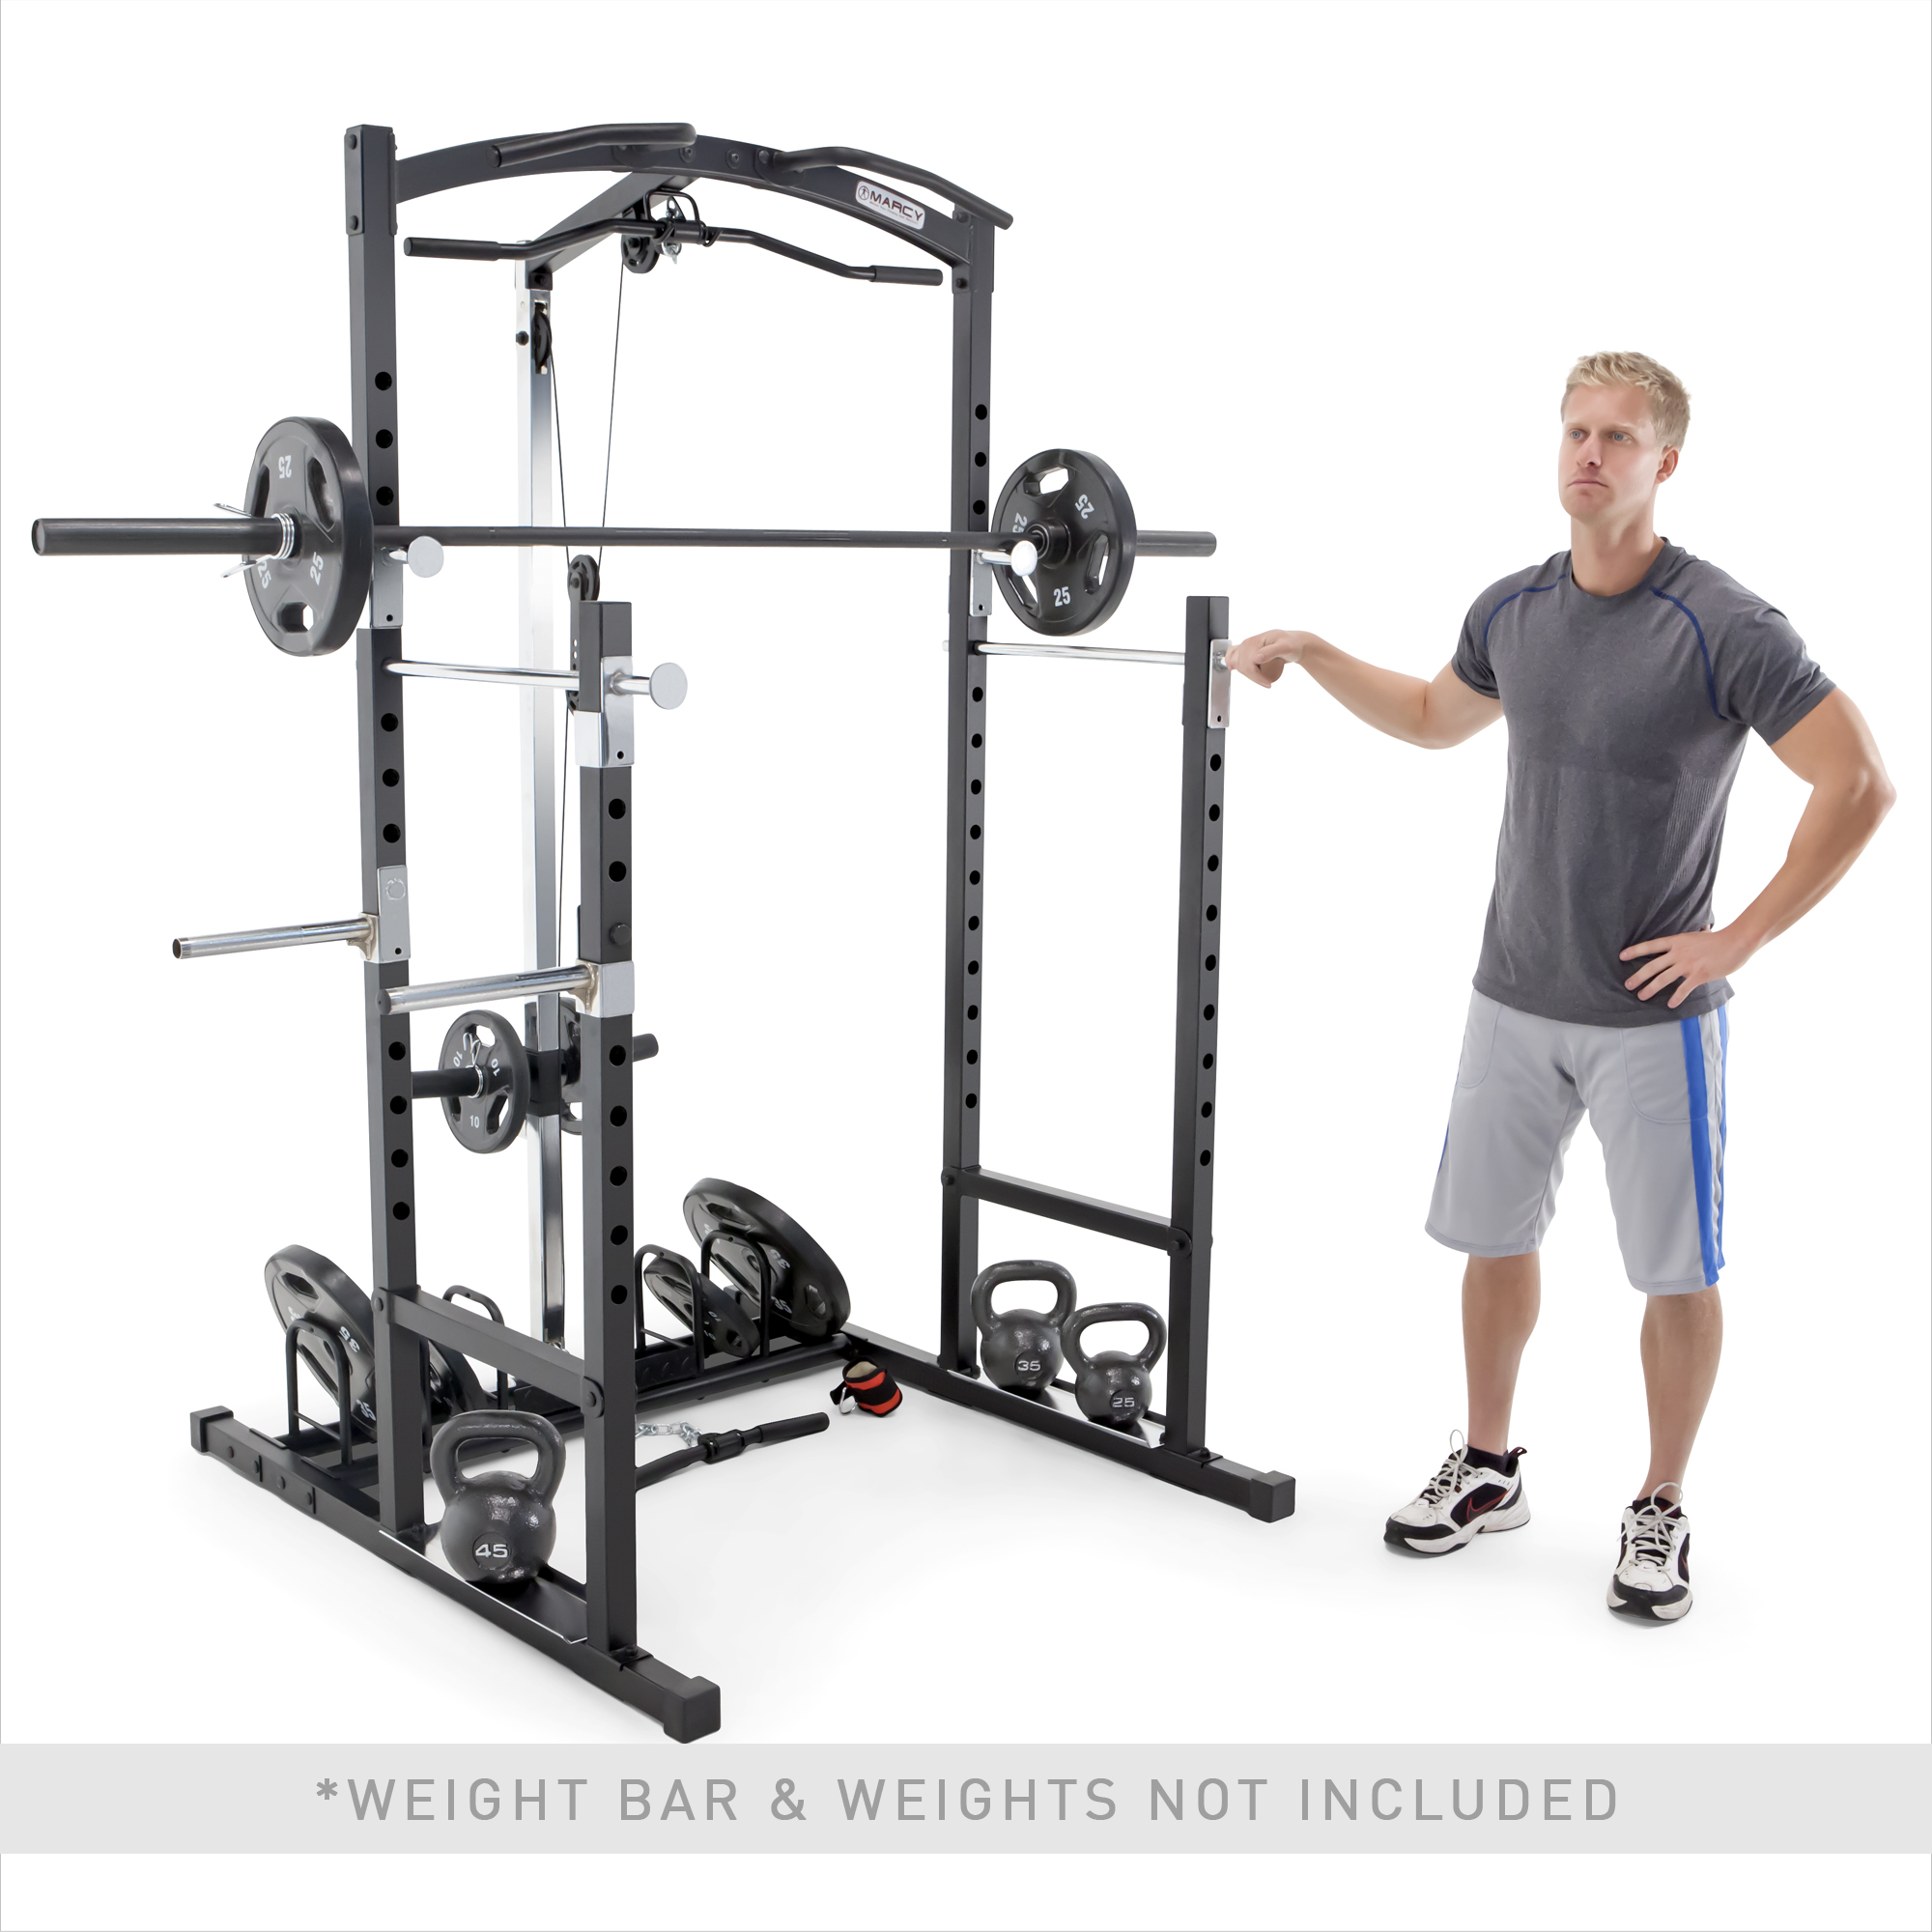 marcy home gym cage system workout station for weightlifting bodybuilding and strength training mwm 7041 walmart com